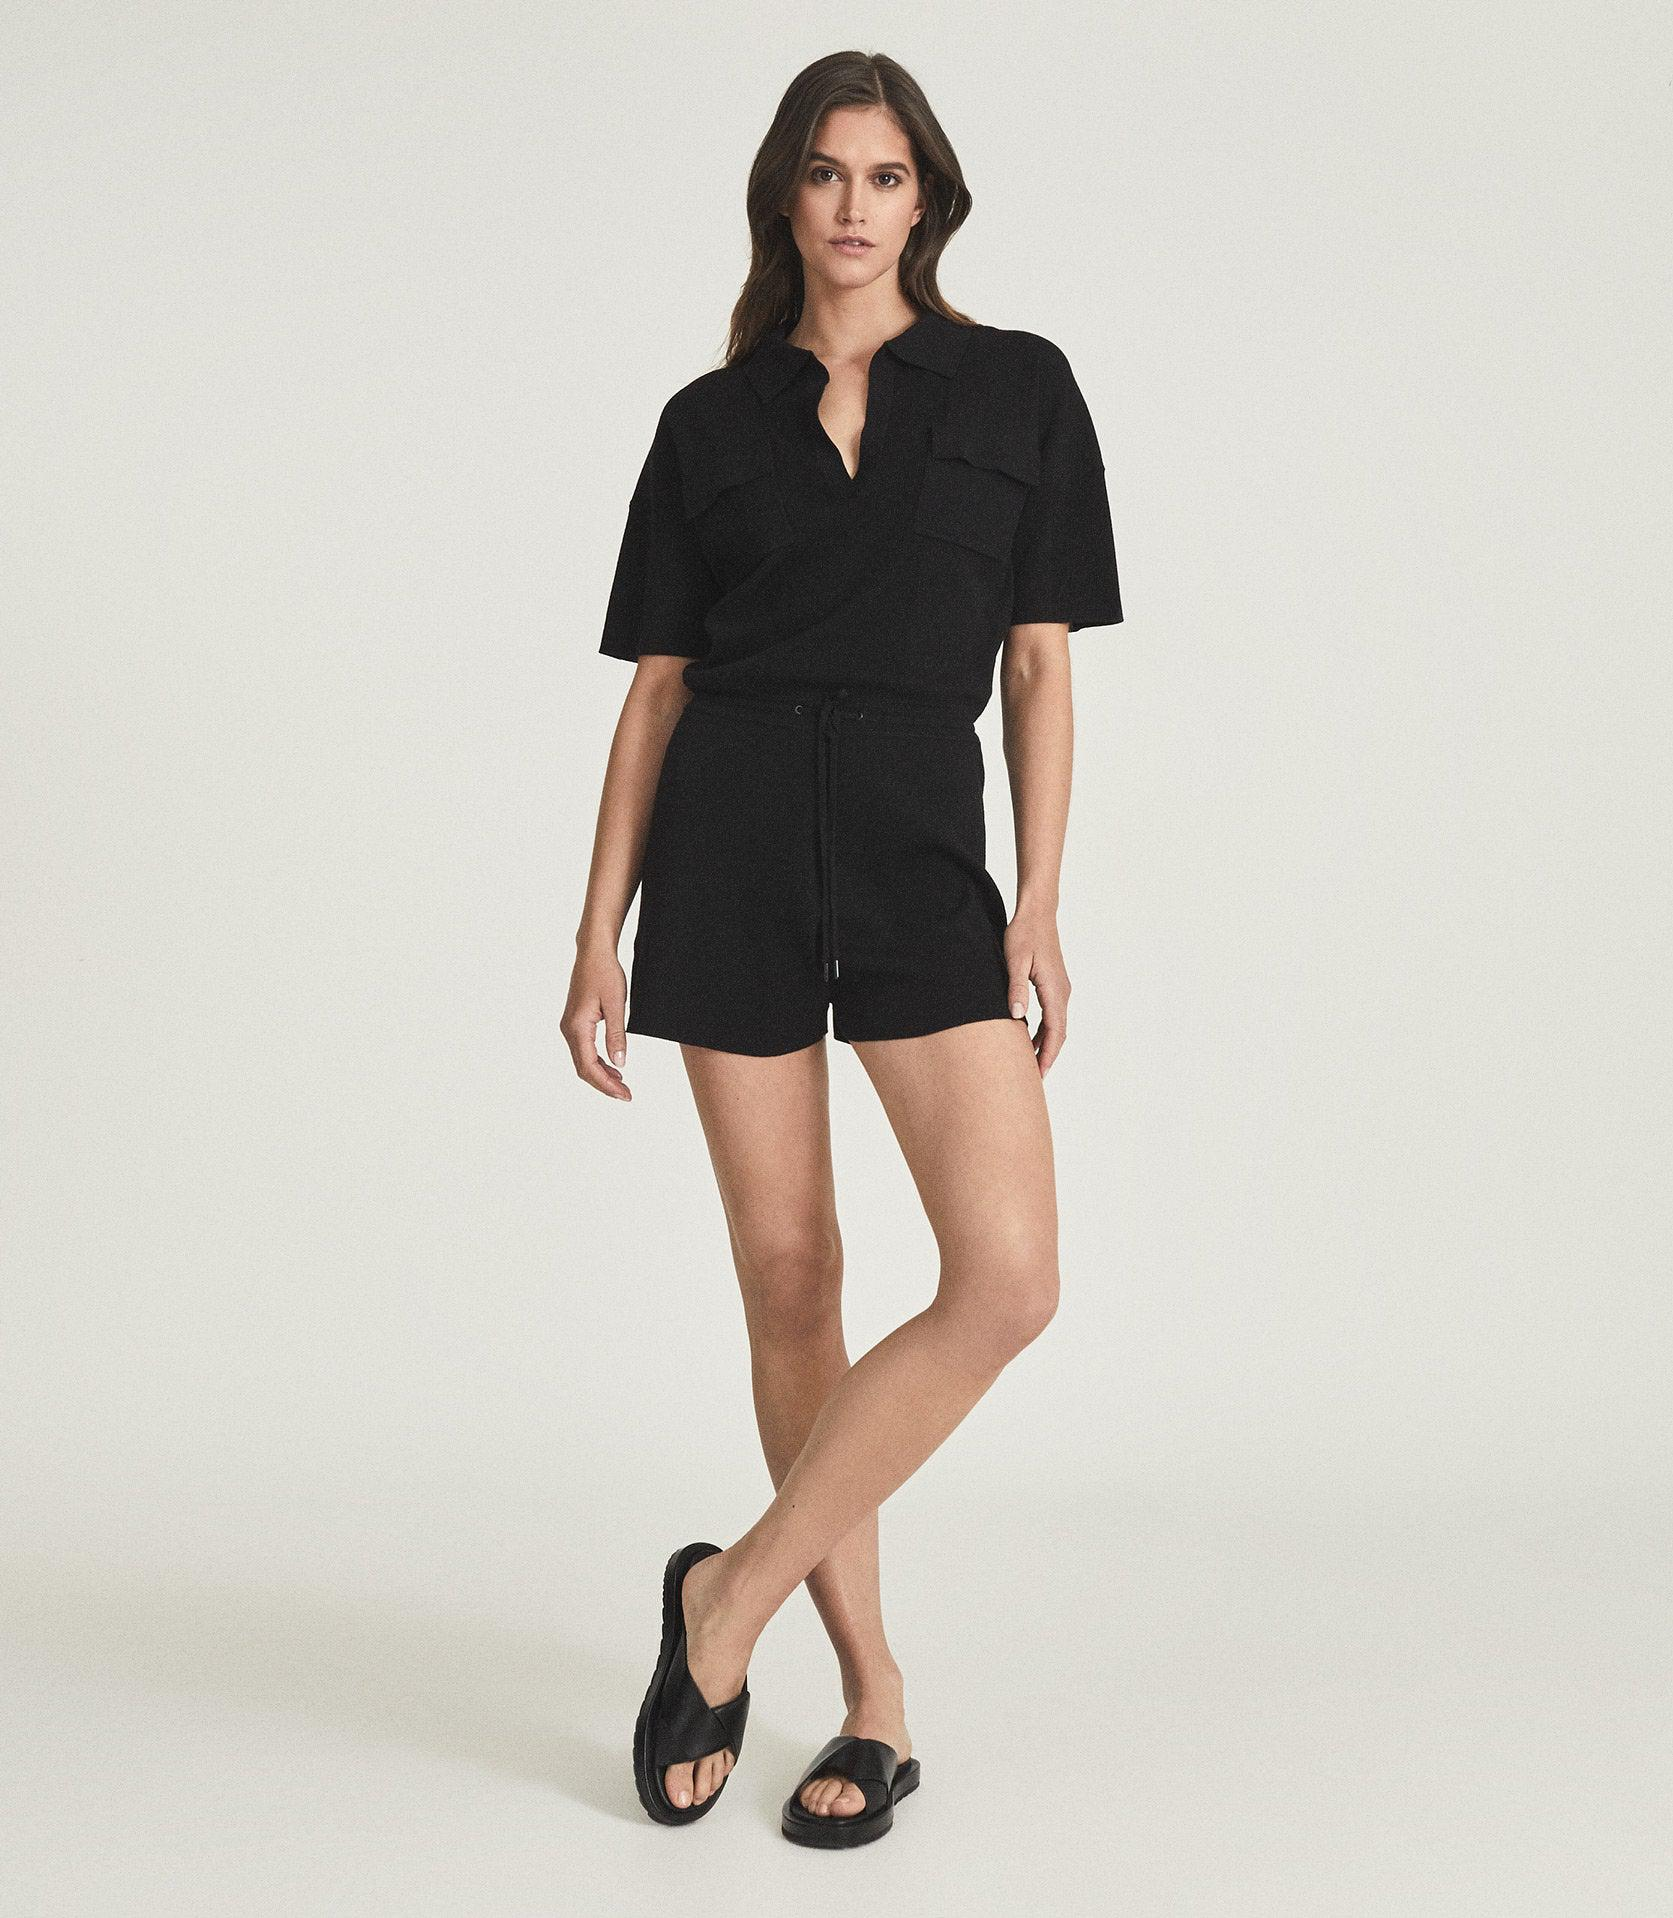 CARA - KNITTED TWIN POCKET PLAYSUIT